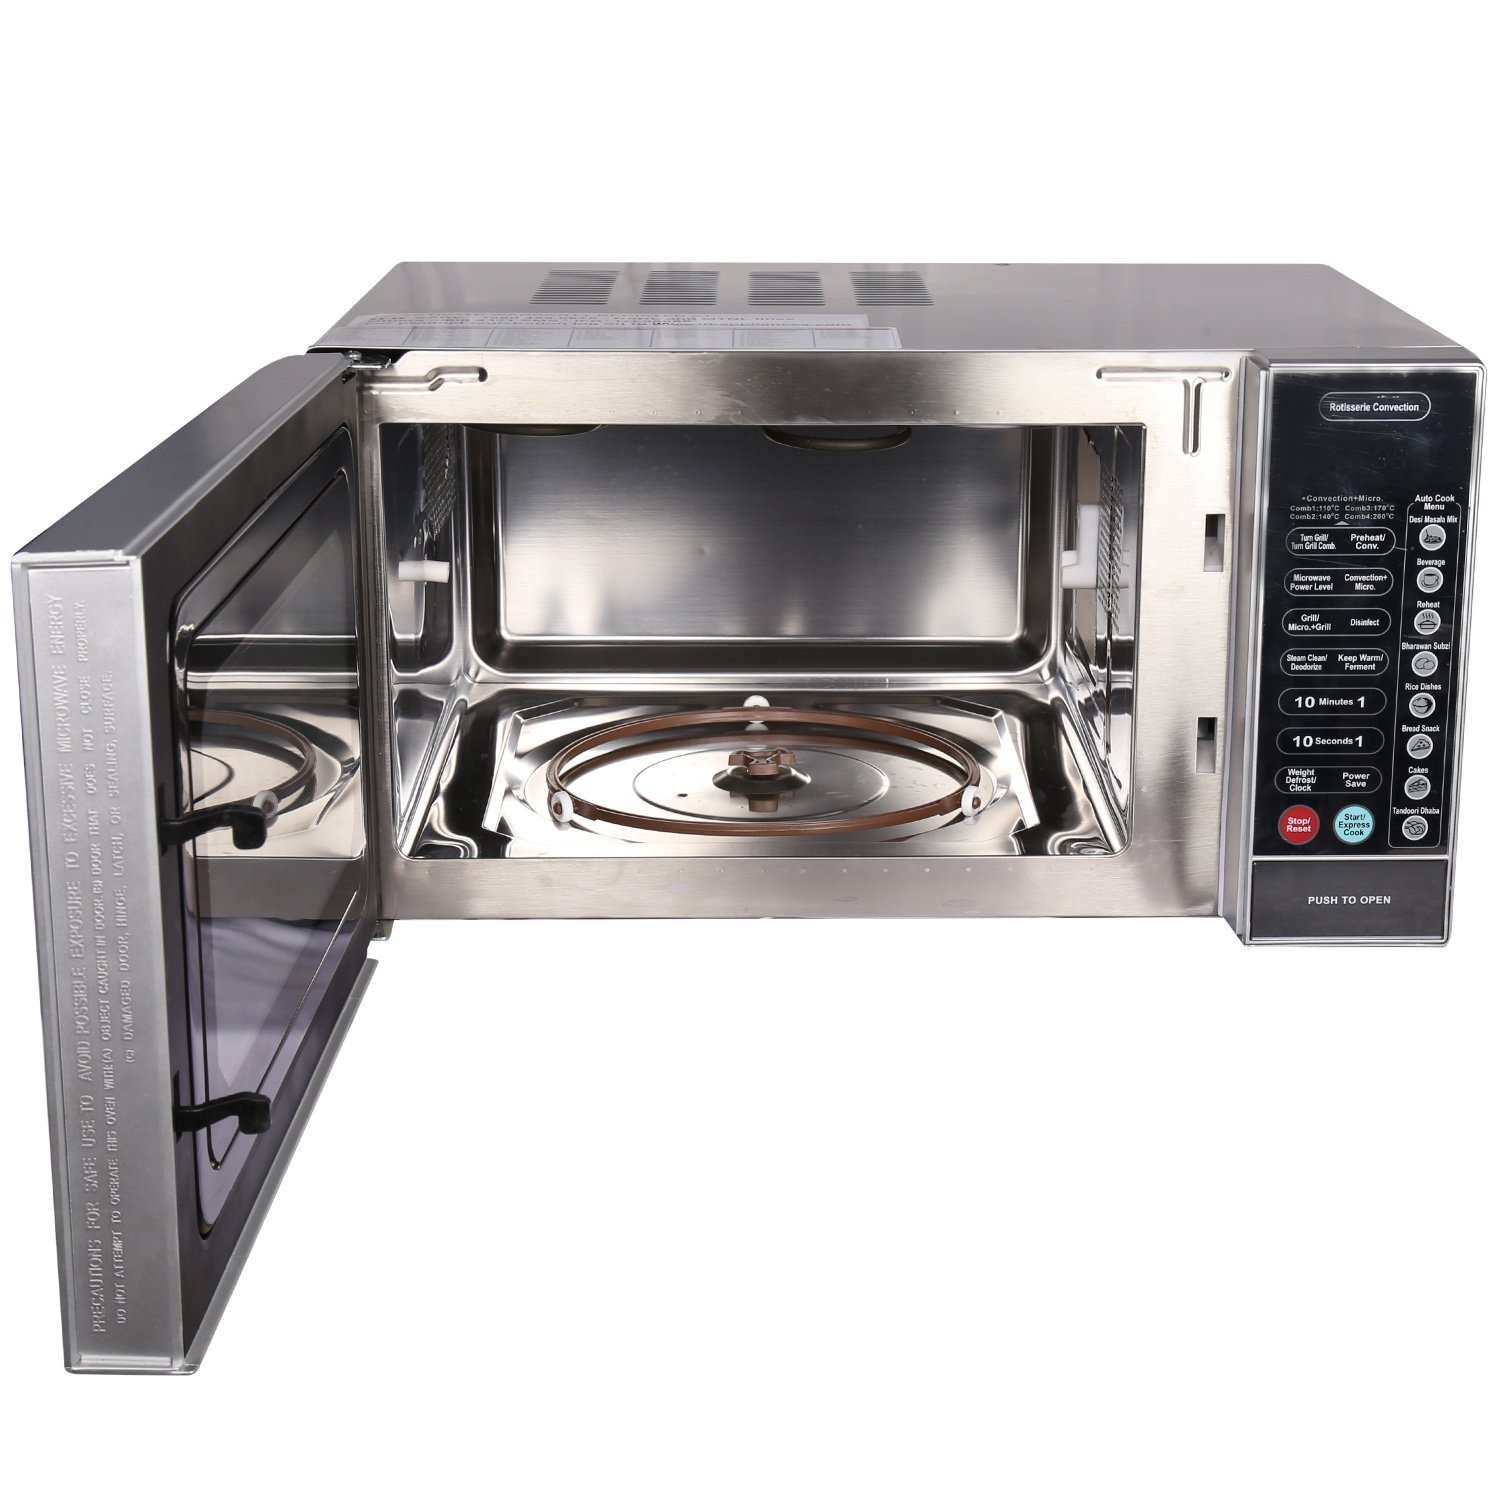 IFB 30 L Oven convection mode